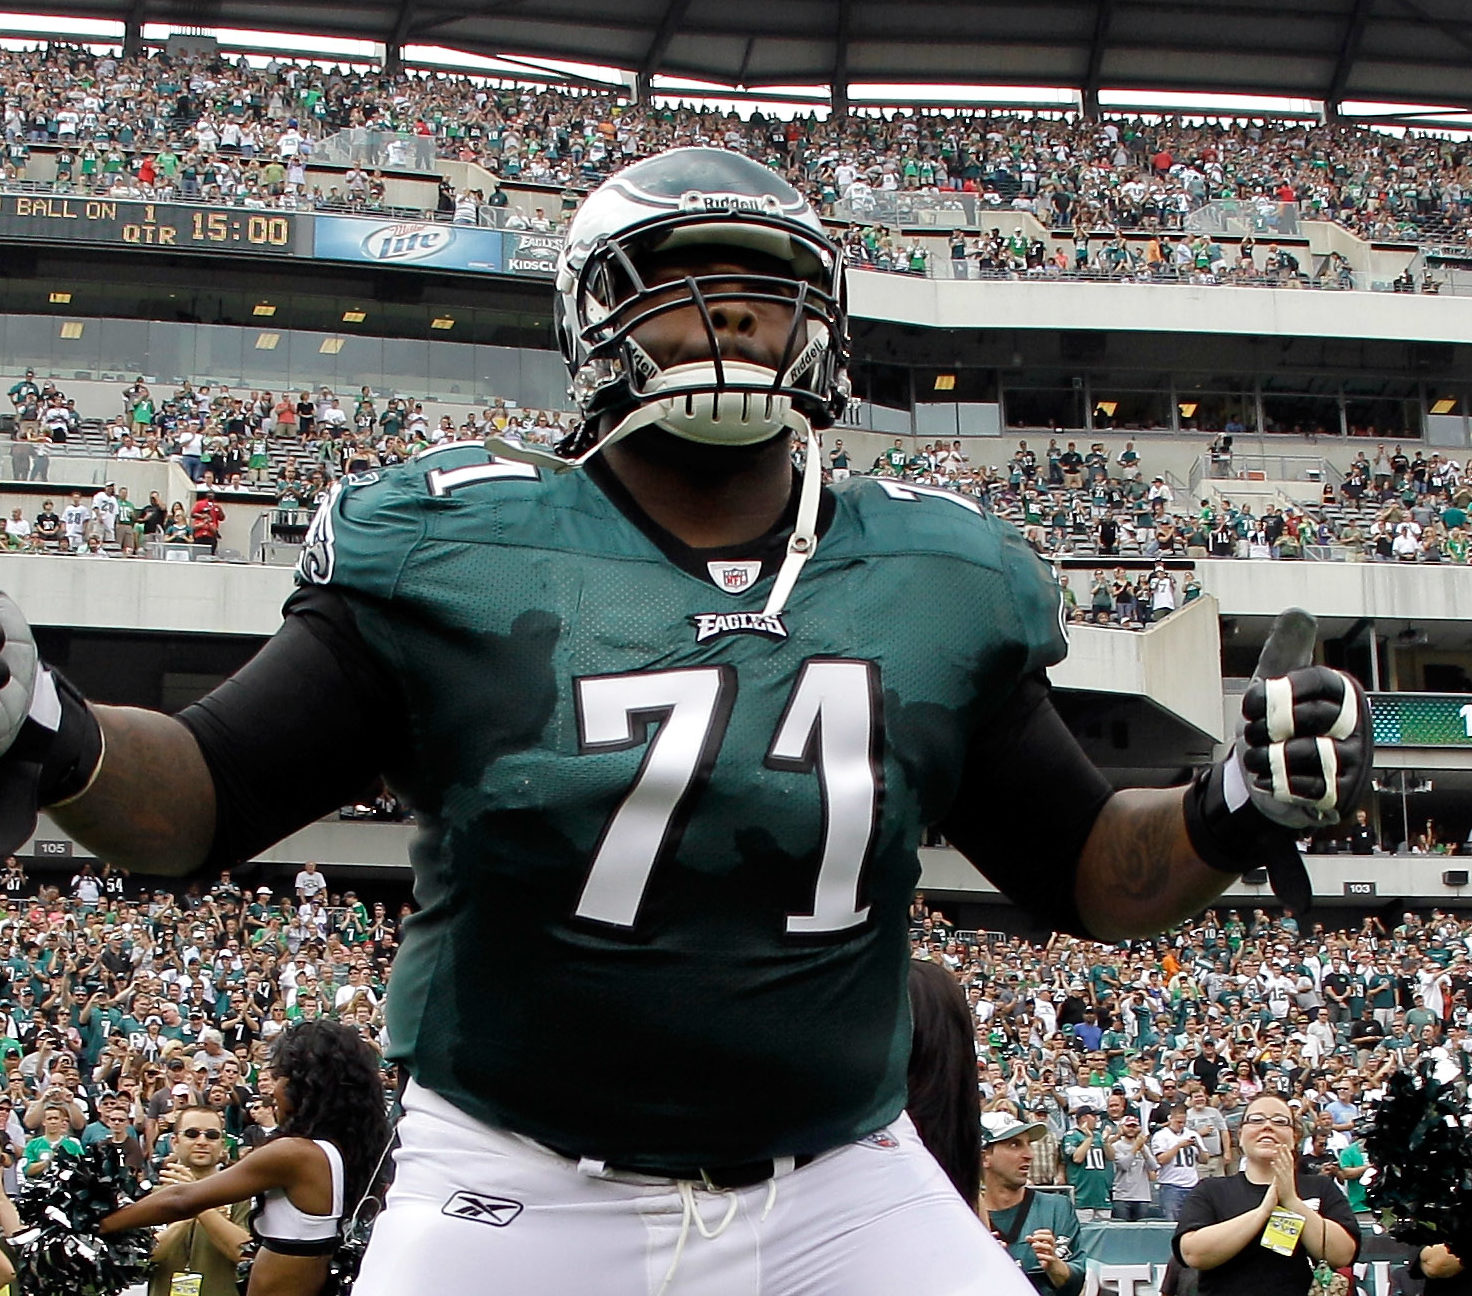 PHILADELPHIA, PA - SEPTEMBER 25: Jason Peters #71 of the Philadelphia Eagles takes the field against the New York Giants during the game at Lincoln Financial Field on September 25, 2011 in Philadelphia, Pennsylvania. (Photo by Rob Carr/Getty Images)